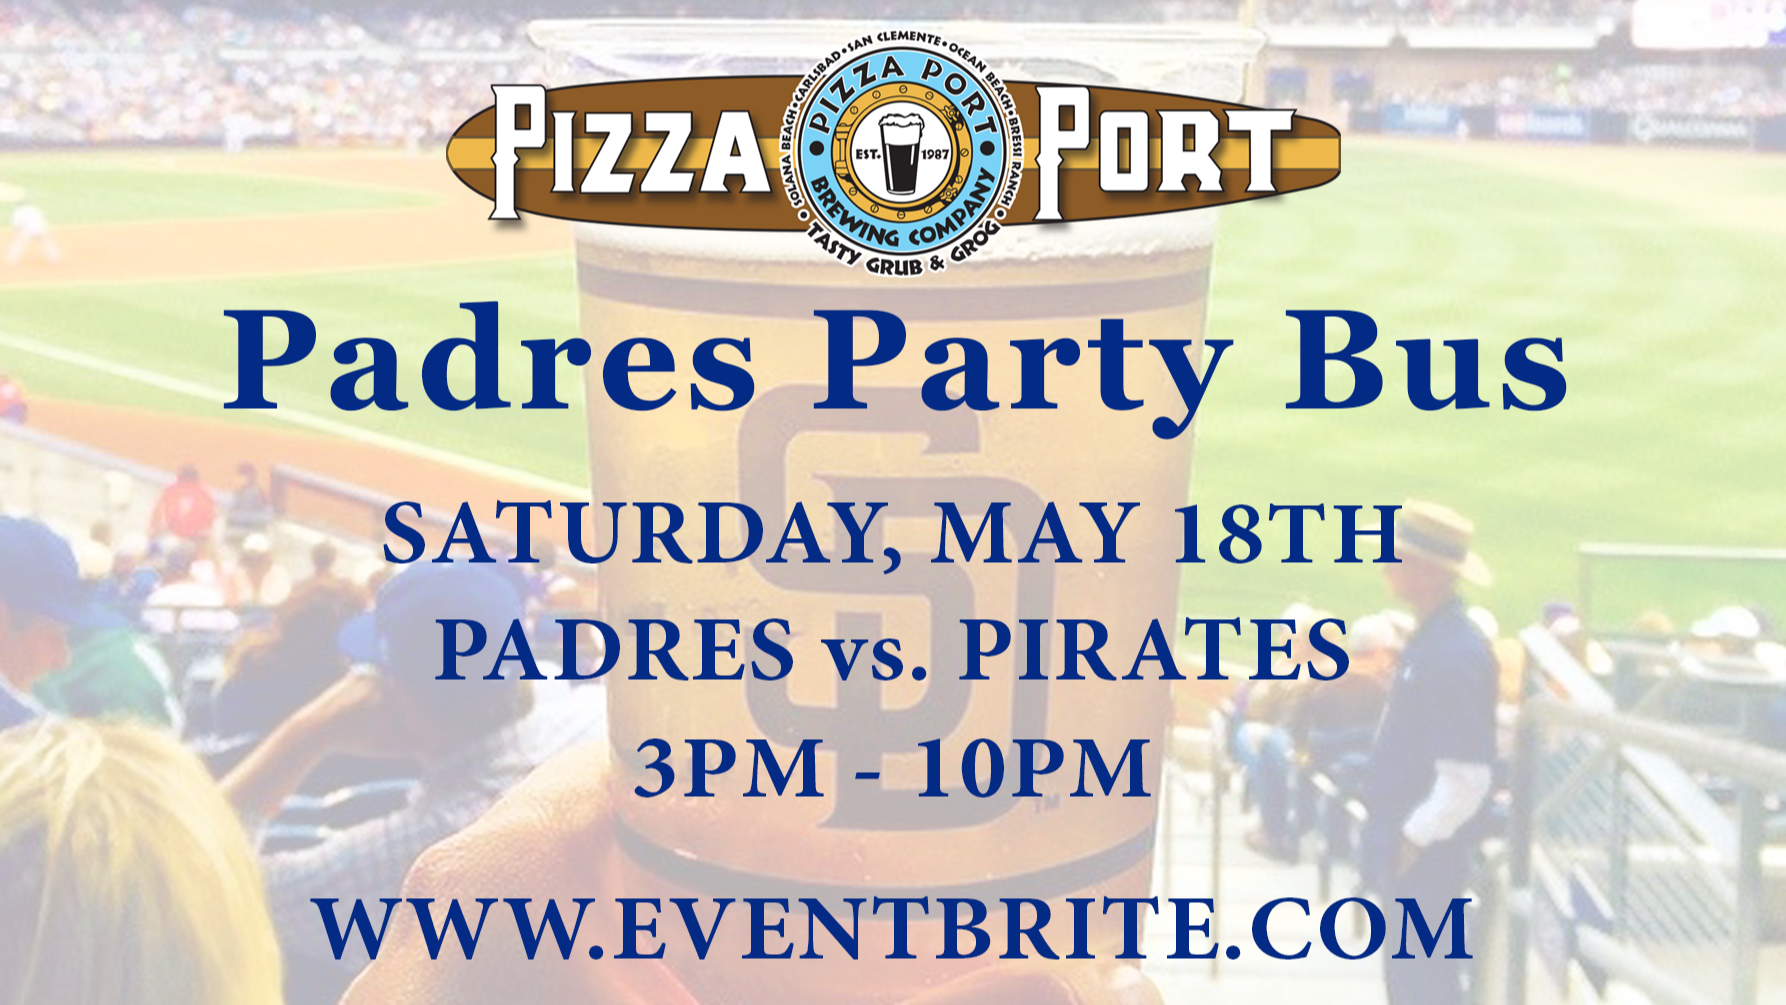 Pizza Port Padres Party Bus vs. Pittsburgh Pirates